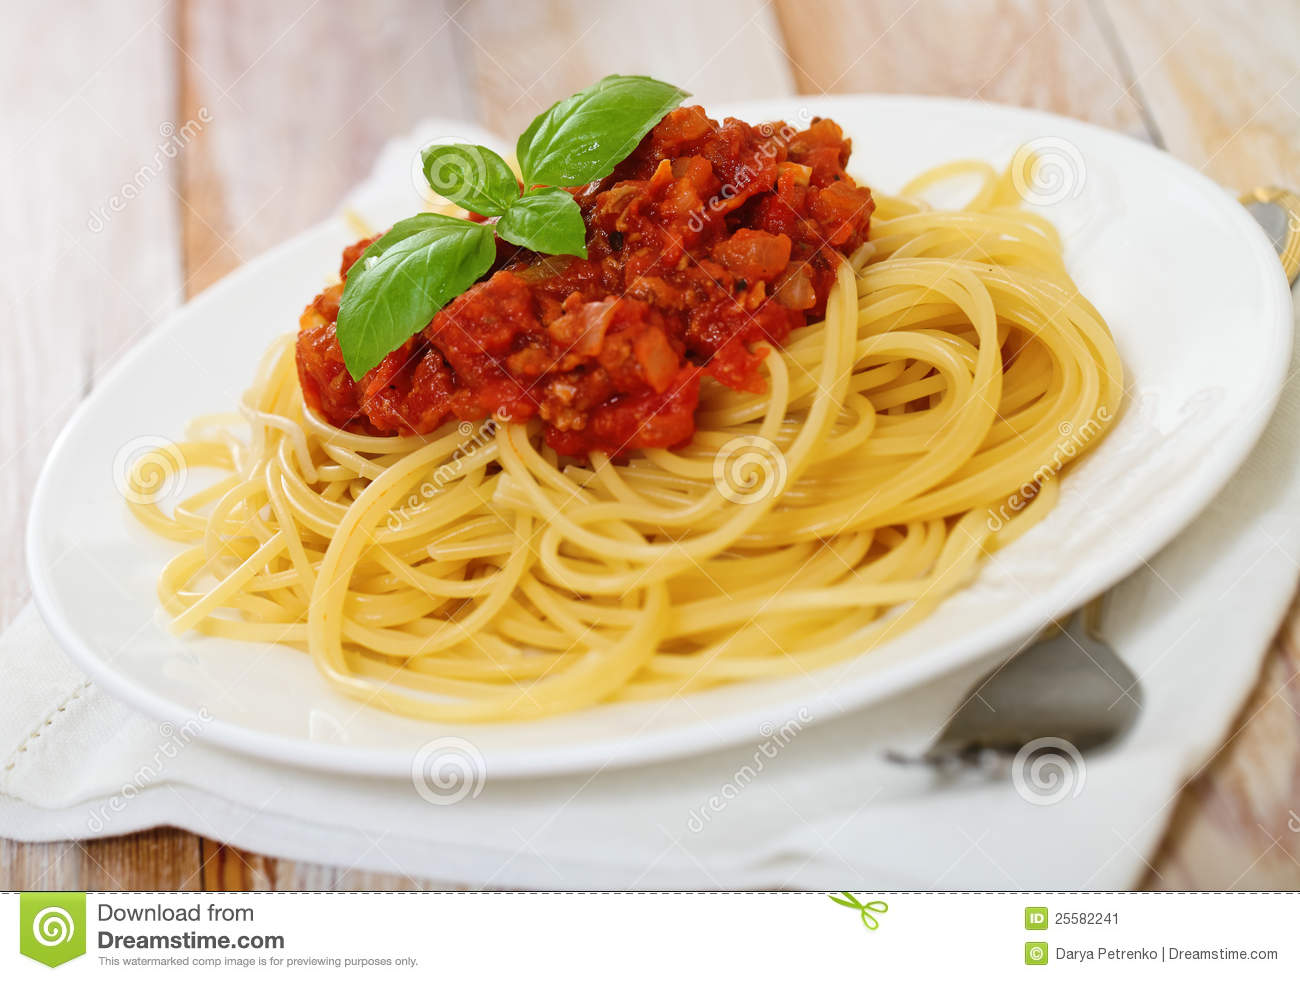 Stock Image Spaghetti Bolognese White Plate Image25582241 also Embutido Conjunto Blanco Plano De Fondo 13242690 moreover Royalty Free Stock Photos Small Ham Cheese Wheat Sub Roll Image12624258 further Del Monte Peach Chunks Yellow Cling In Heavy Syrup 15 25 Oz Can in addition Royalty Free Stock Images Turkish Chicken Doner Kebab White Background Image31298139. on lunch meat clip art